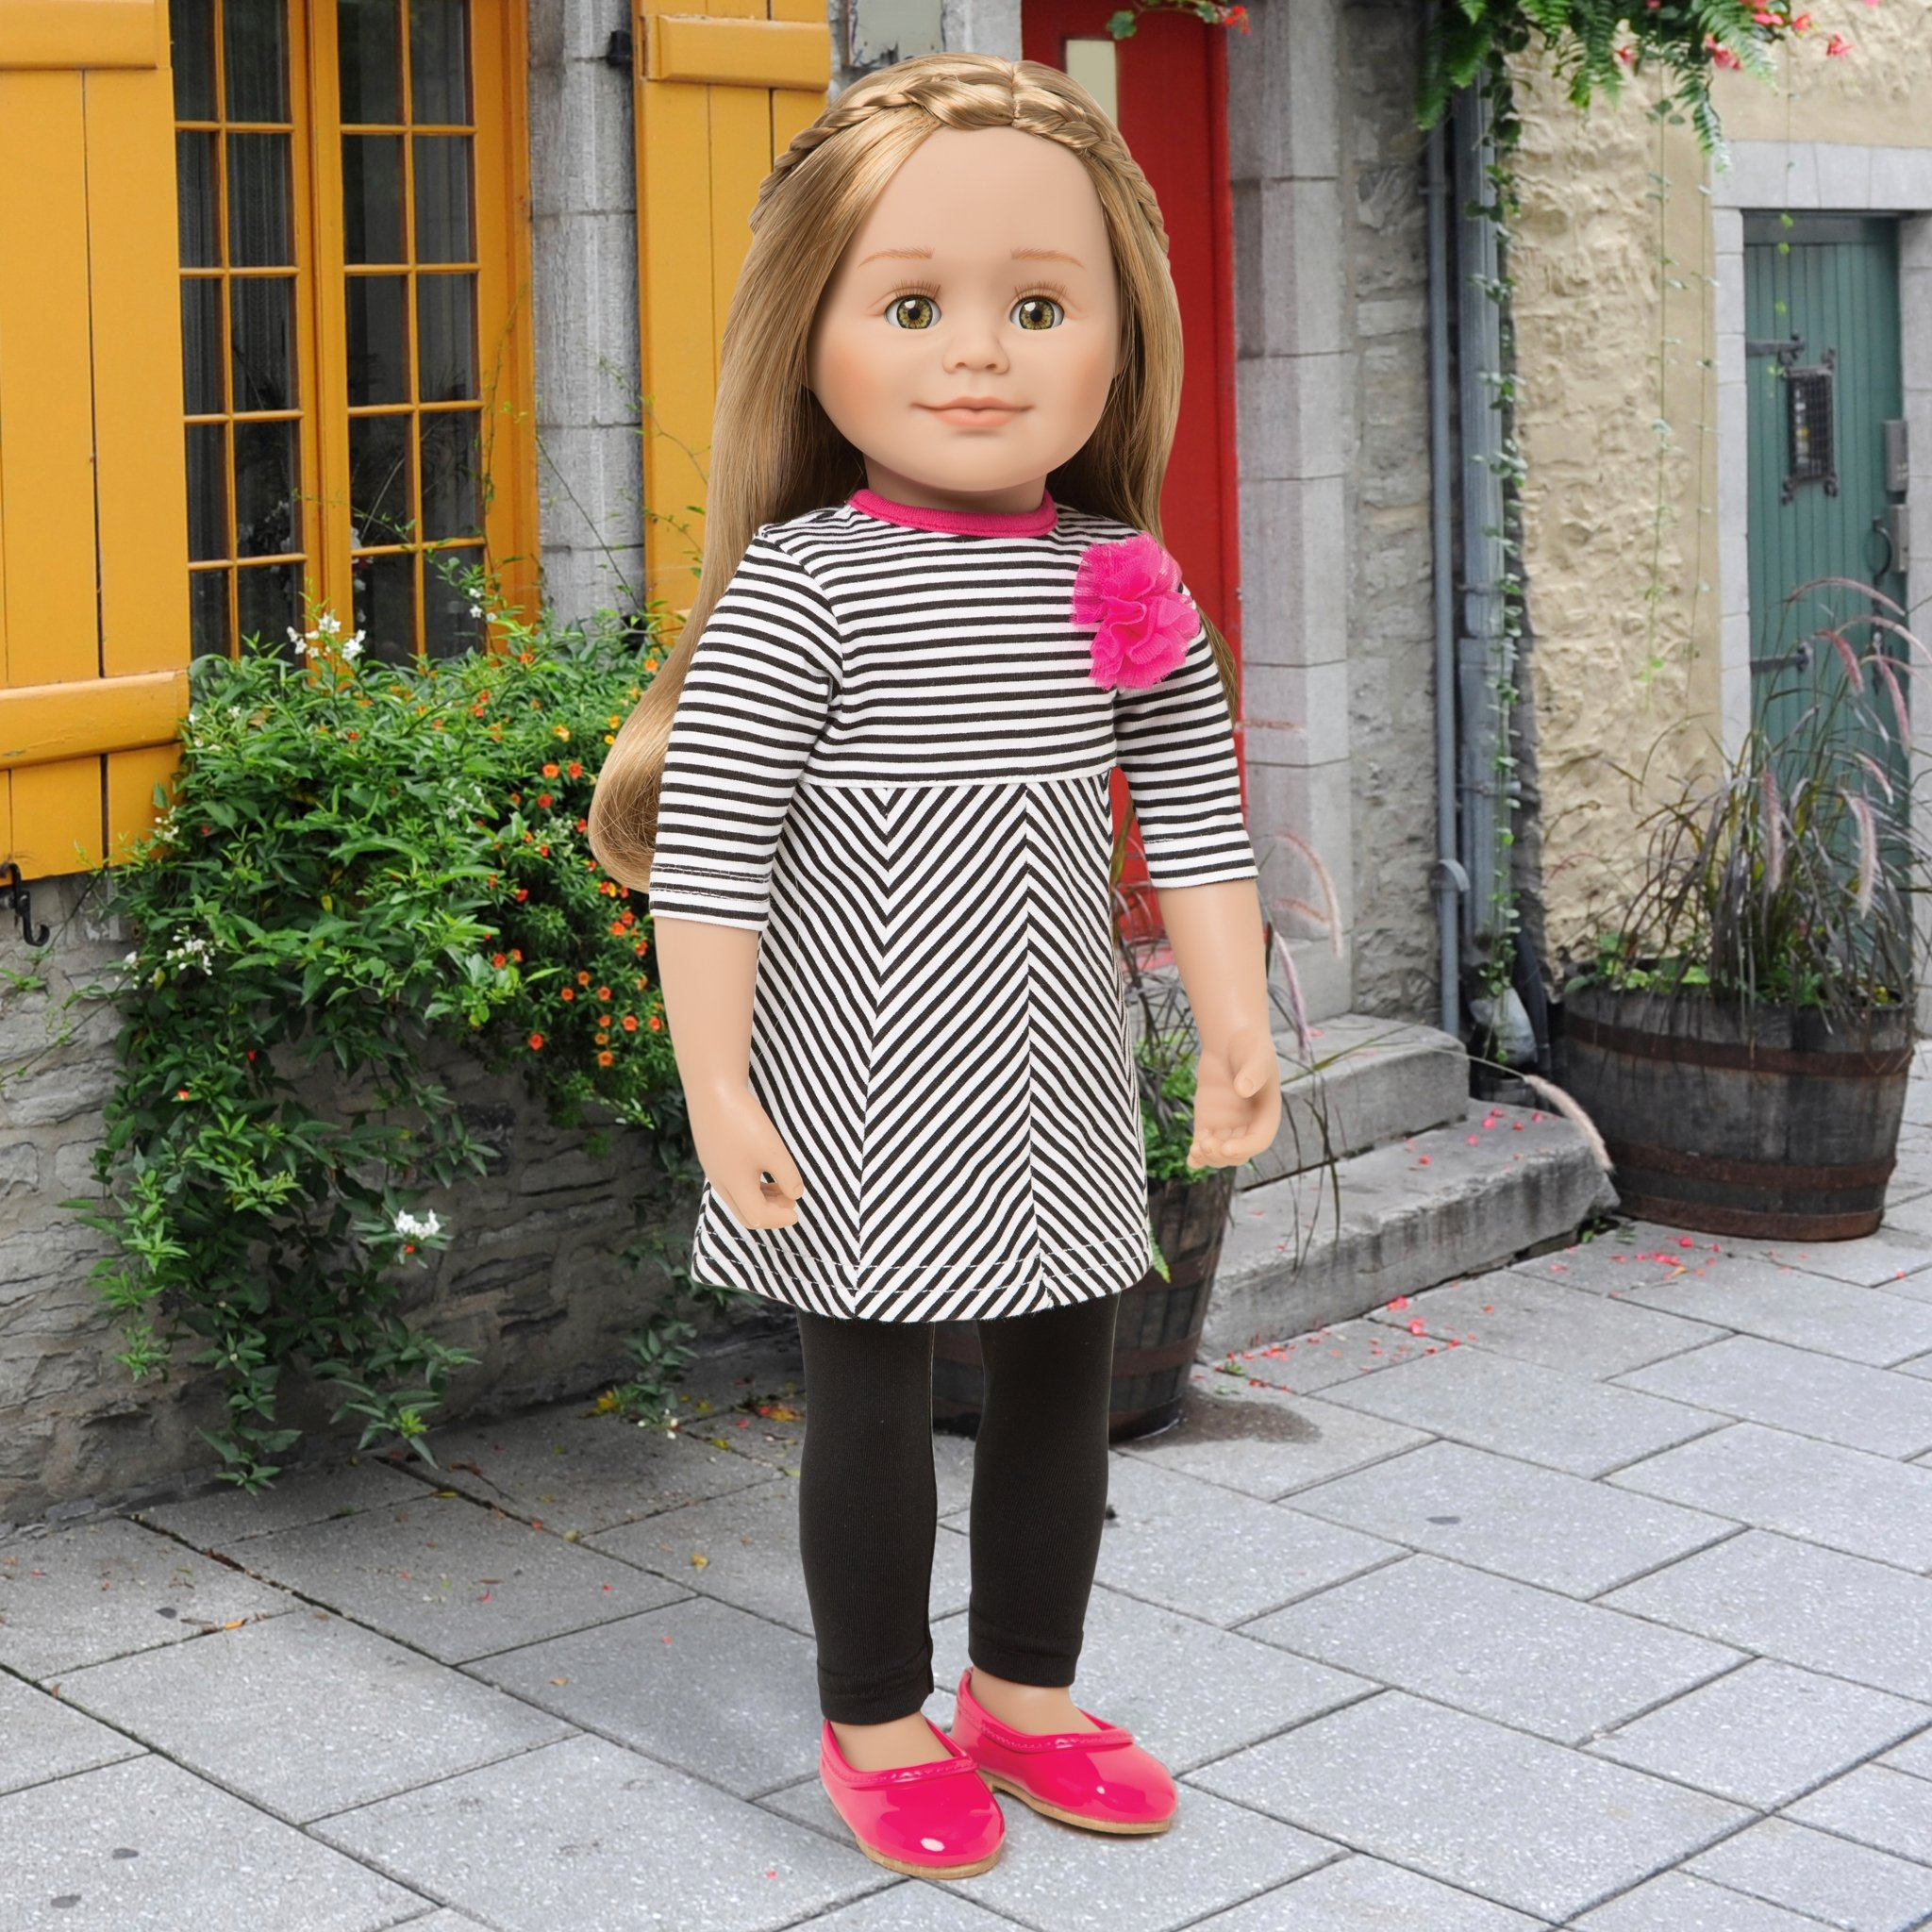 Ile de passage black and white striped dress with fuchsia pink flower detail, black tights, and bright pink shiny flats. Fits all 18 inch dolls. Shown on KL1 Leonie doll.